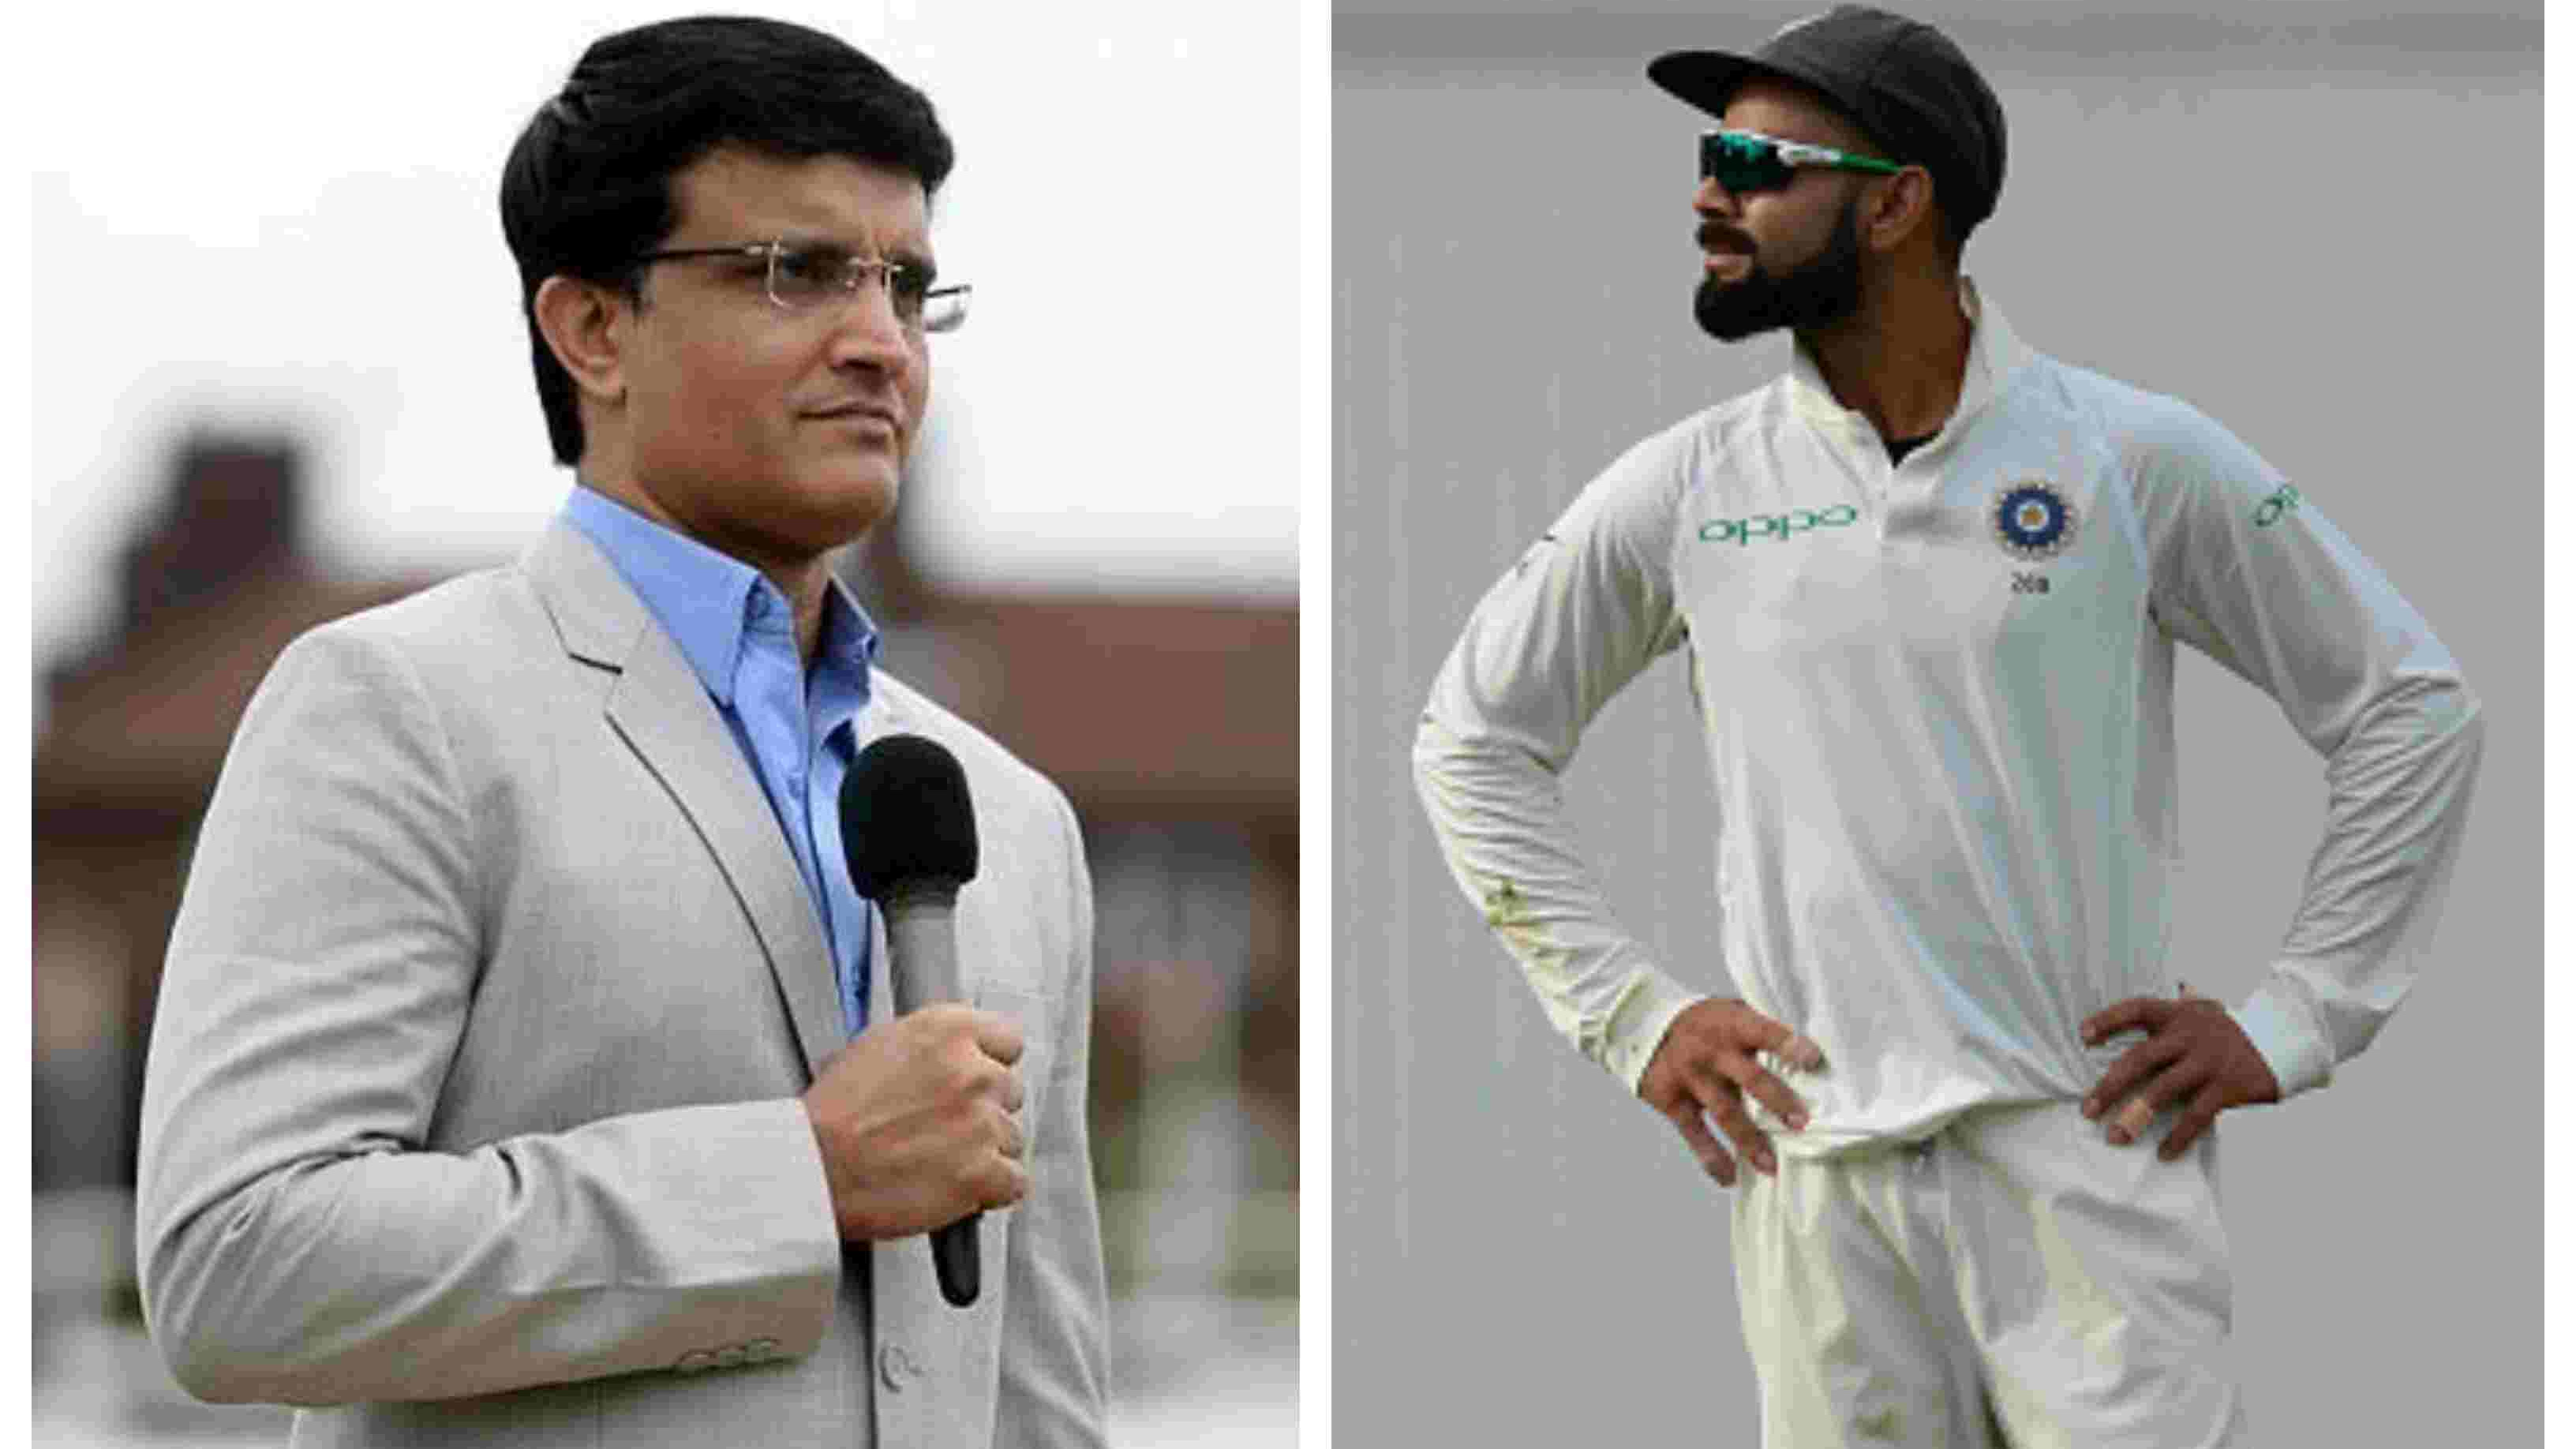 ENG v IND 2018: Virat Kohli needs to recognize talent and bring the best out of them, says Sourav Ganguly